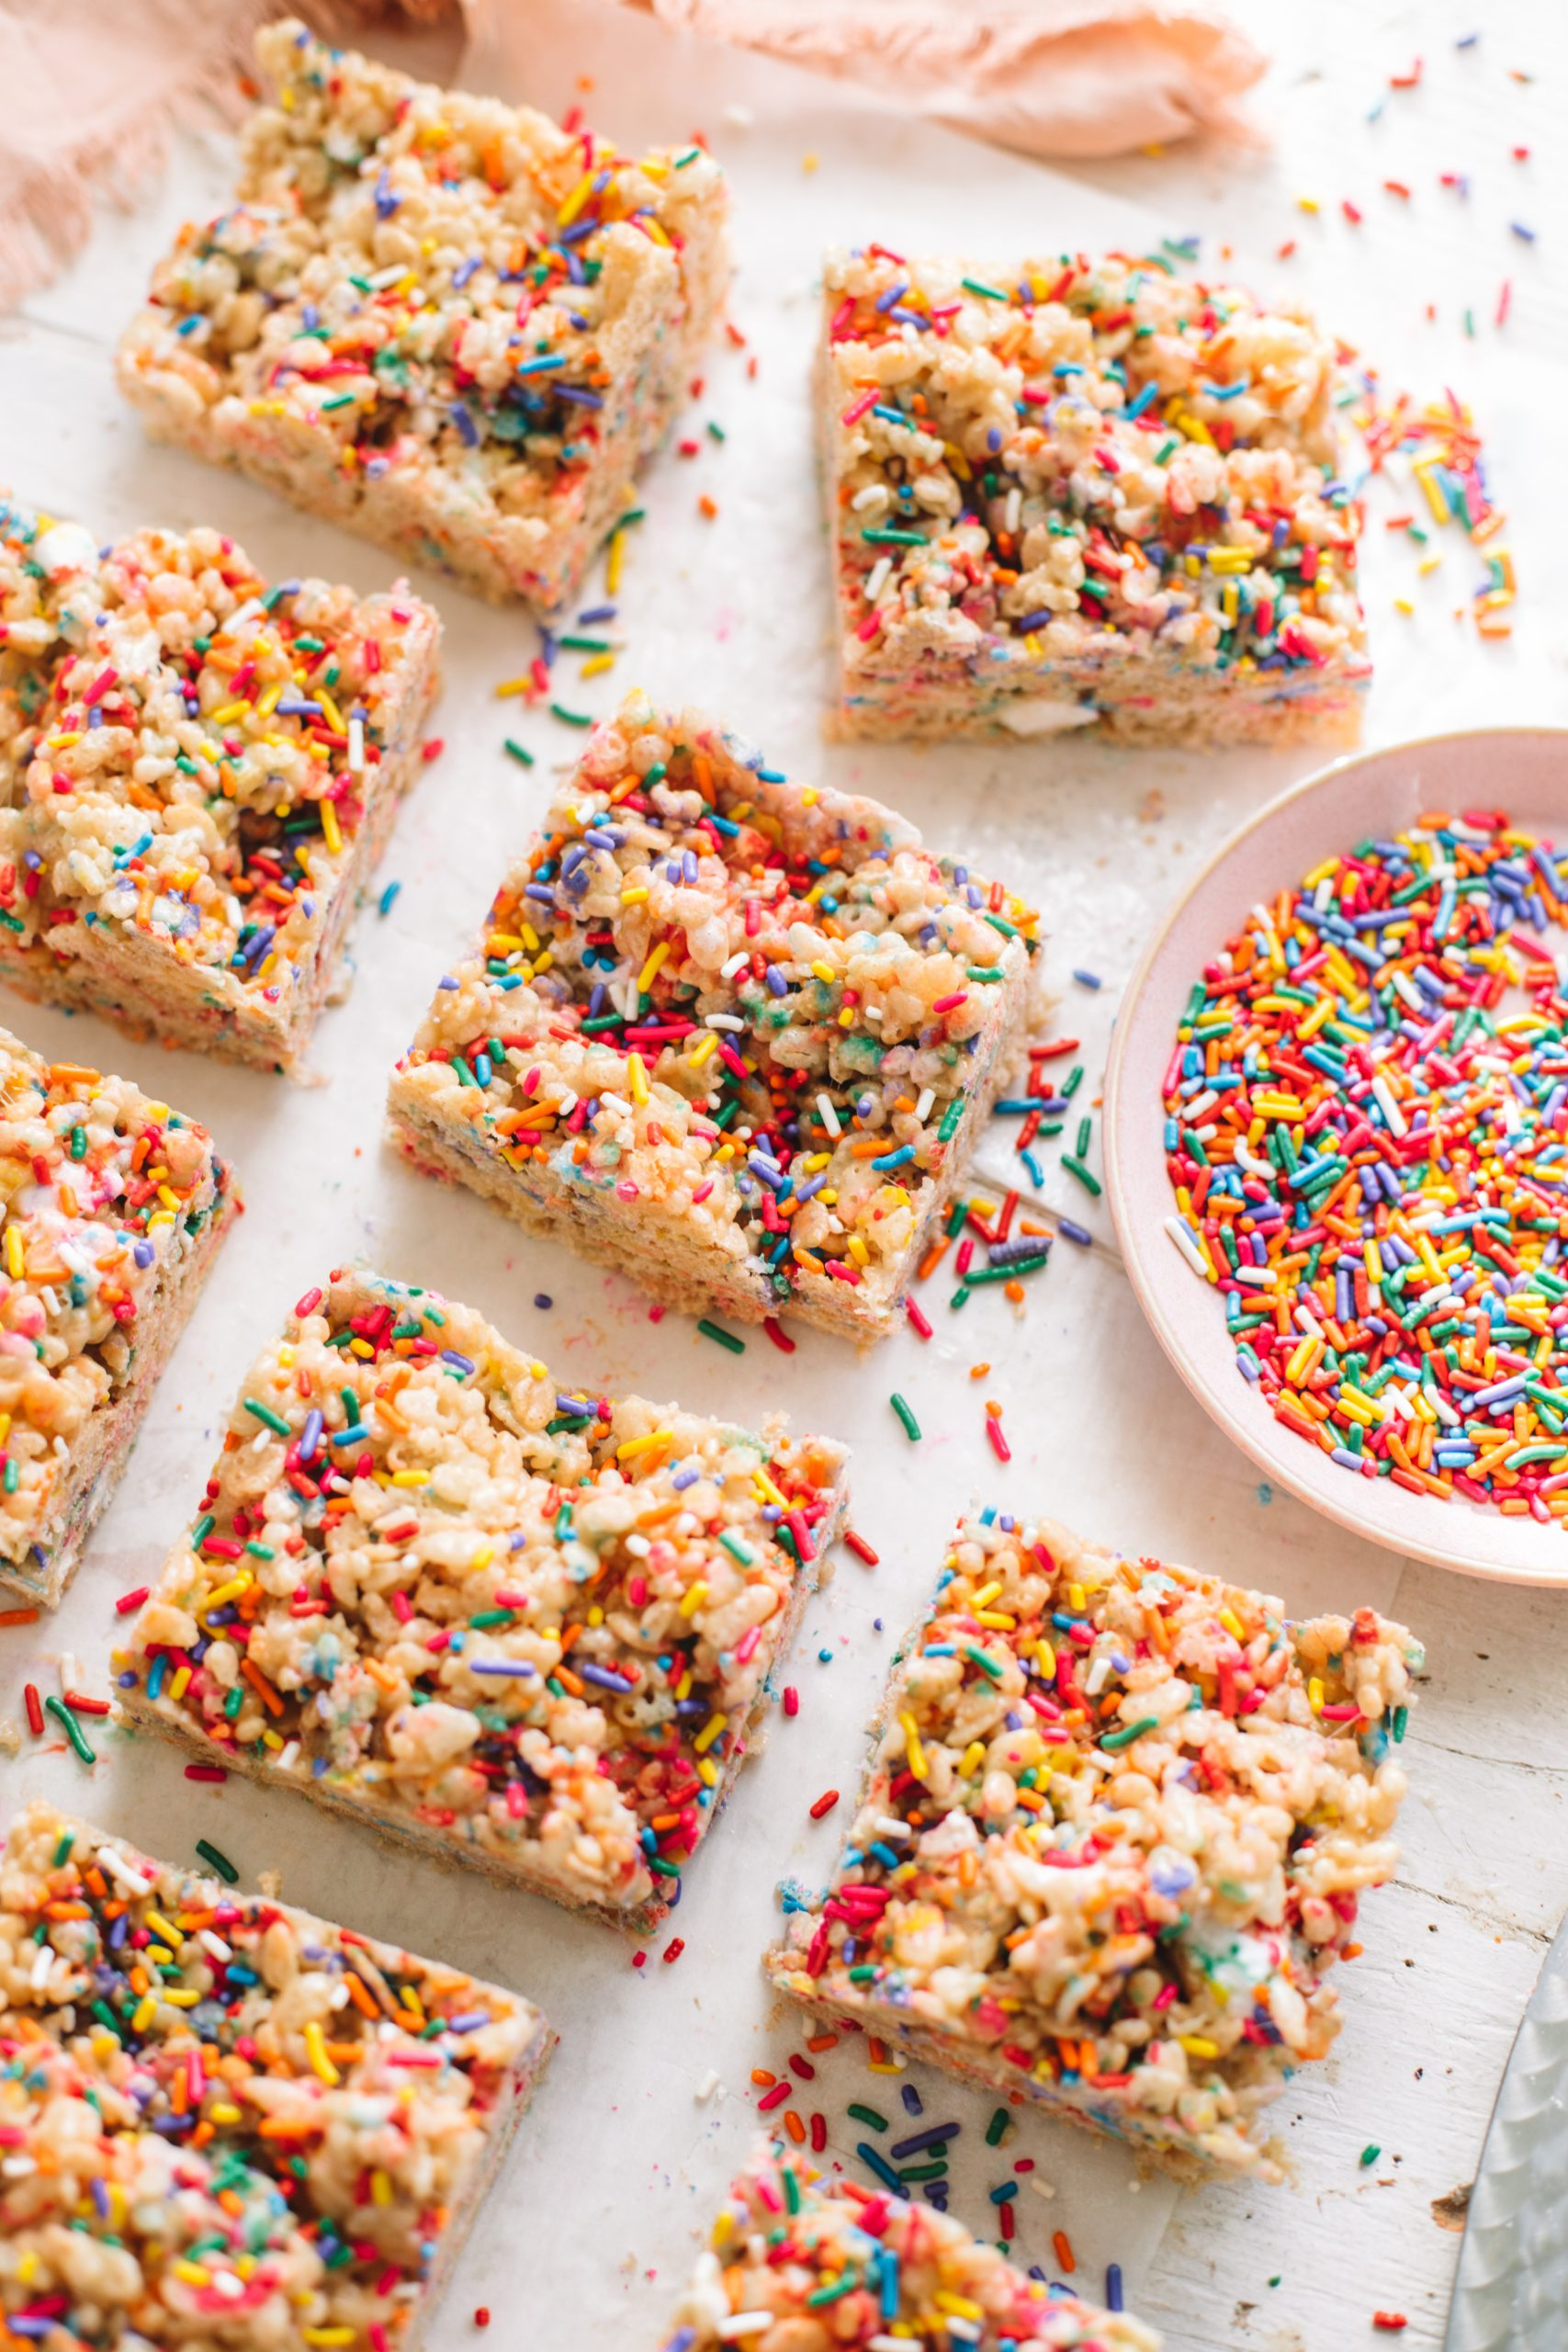 Rainbow sprinkle rice krispie treats with a pink bowl of rainbow sprinkles.